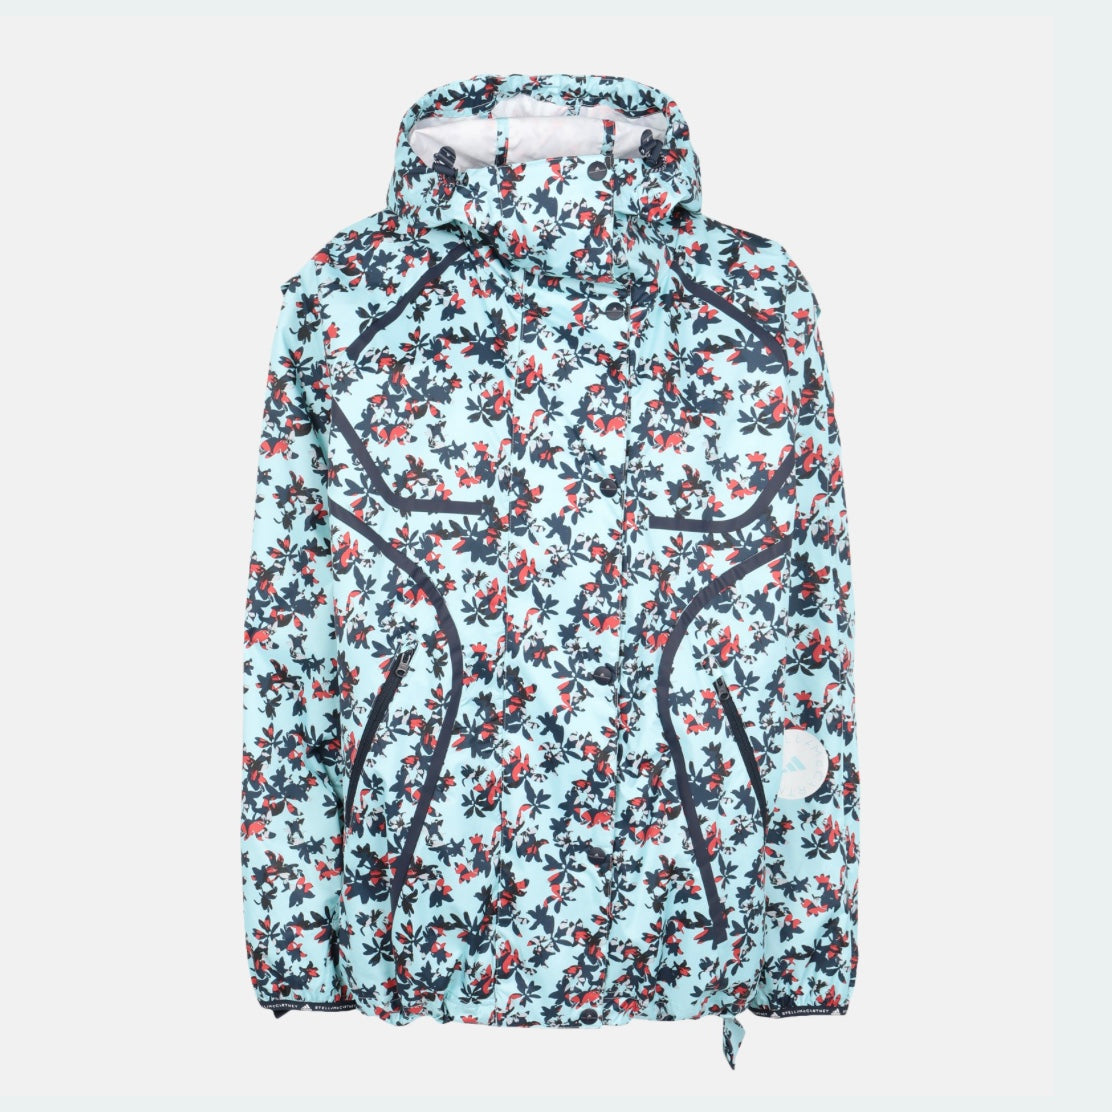 Stella McCartney / Adidas TruePace Printed Running Jacket